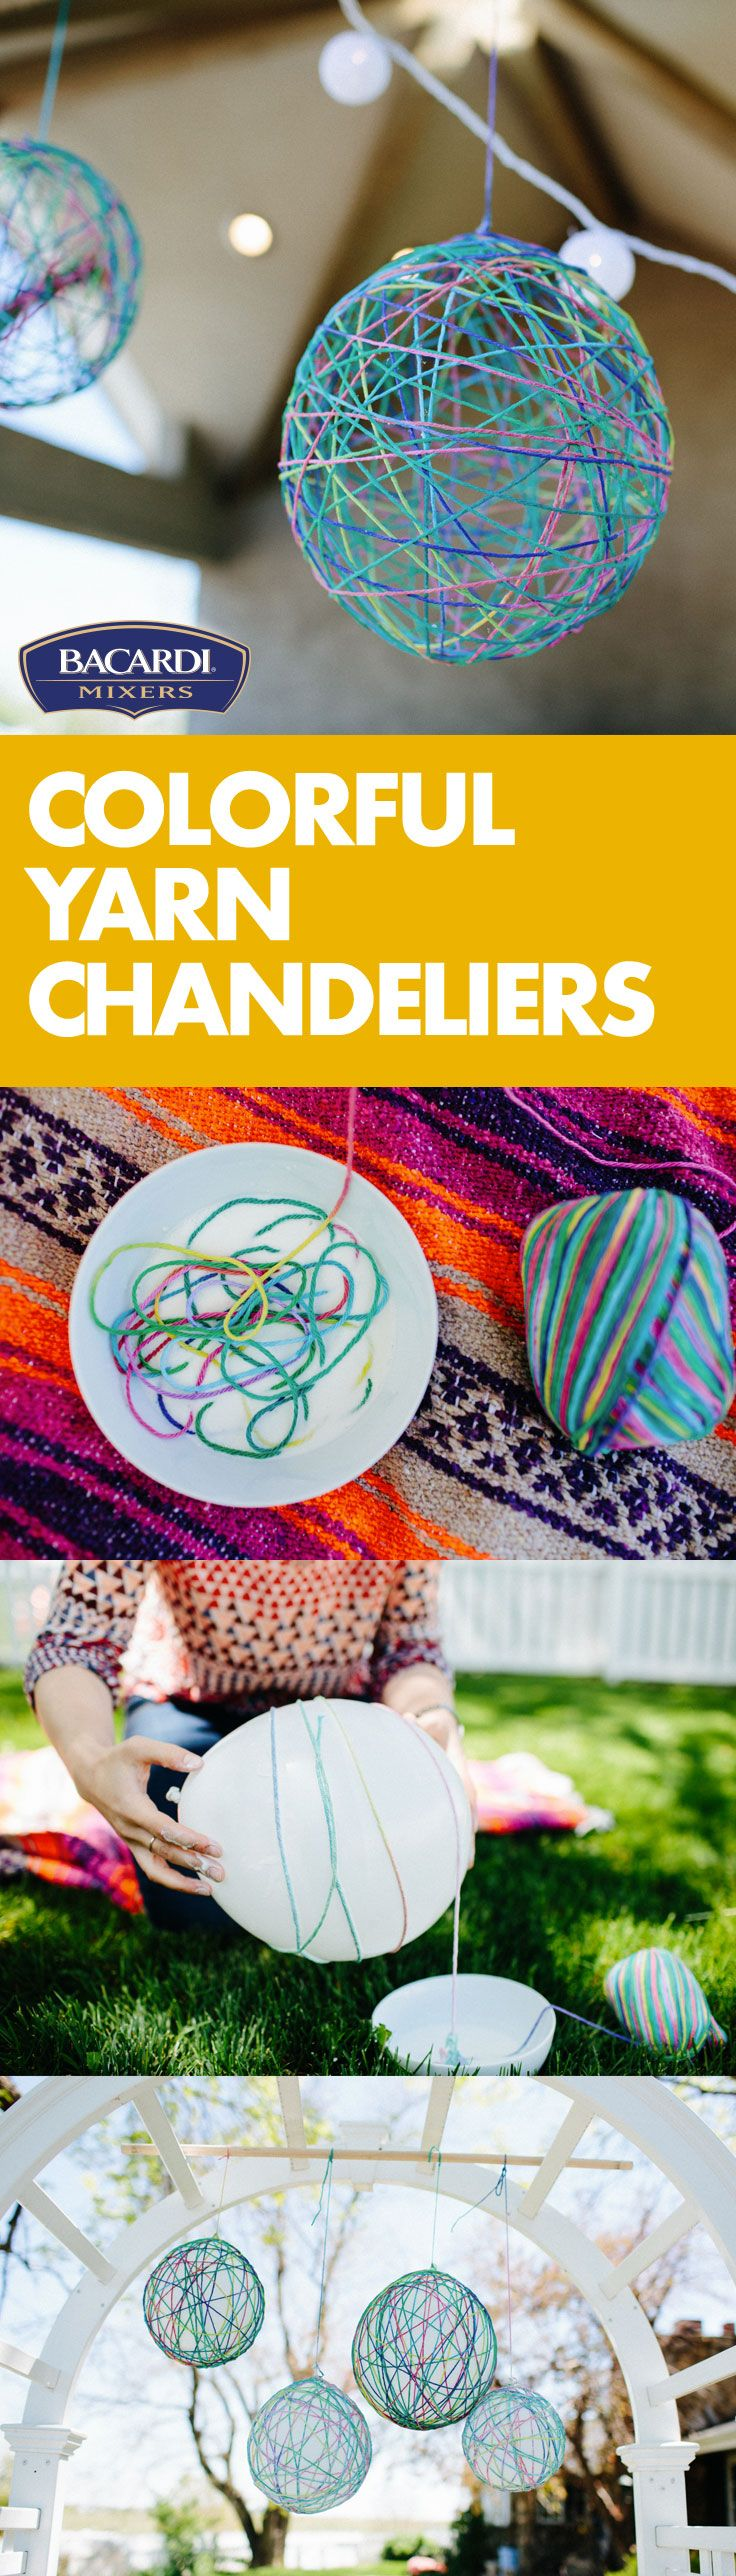 Hang Colorful Yarn Chandeliers wherever you like to hang out! They're fun to make and will wow your guests! You'll need colorful yarn, glue, cornstarch, petroleum jelly, scissors, and balloons—plus a few things to help keep things tidy.